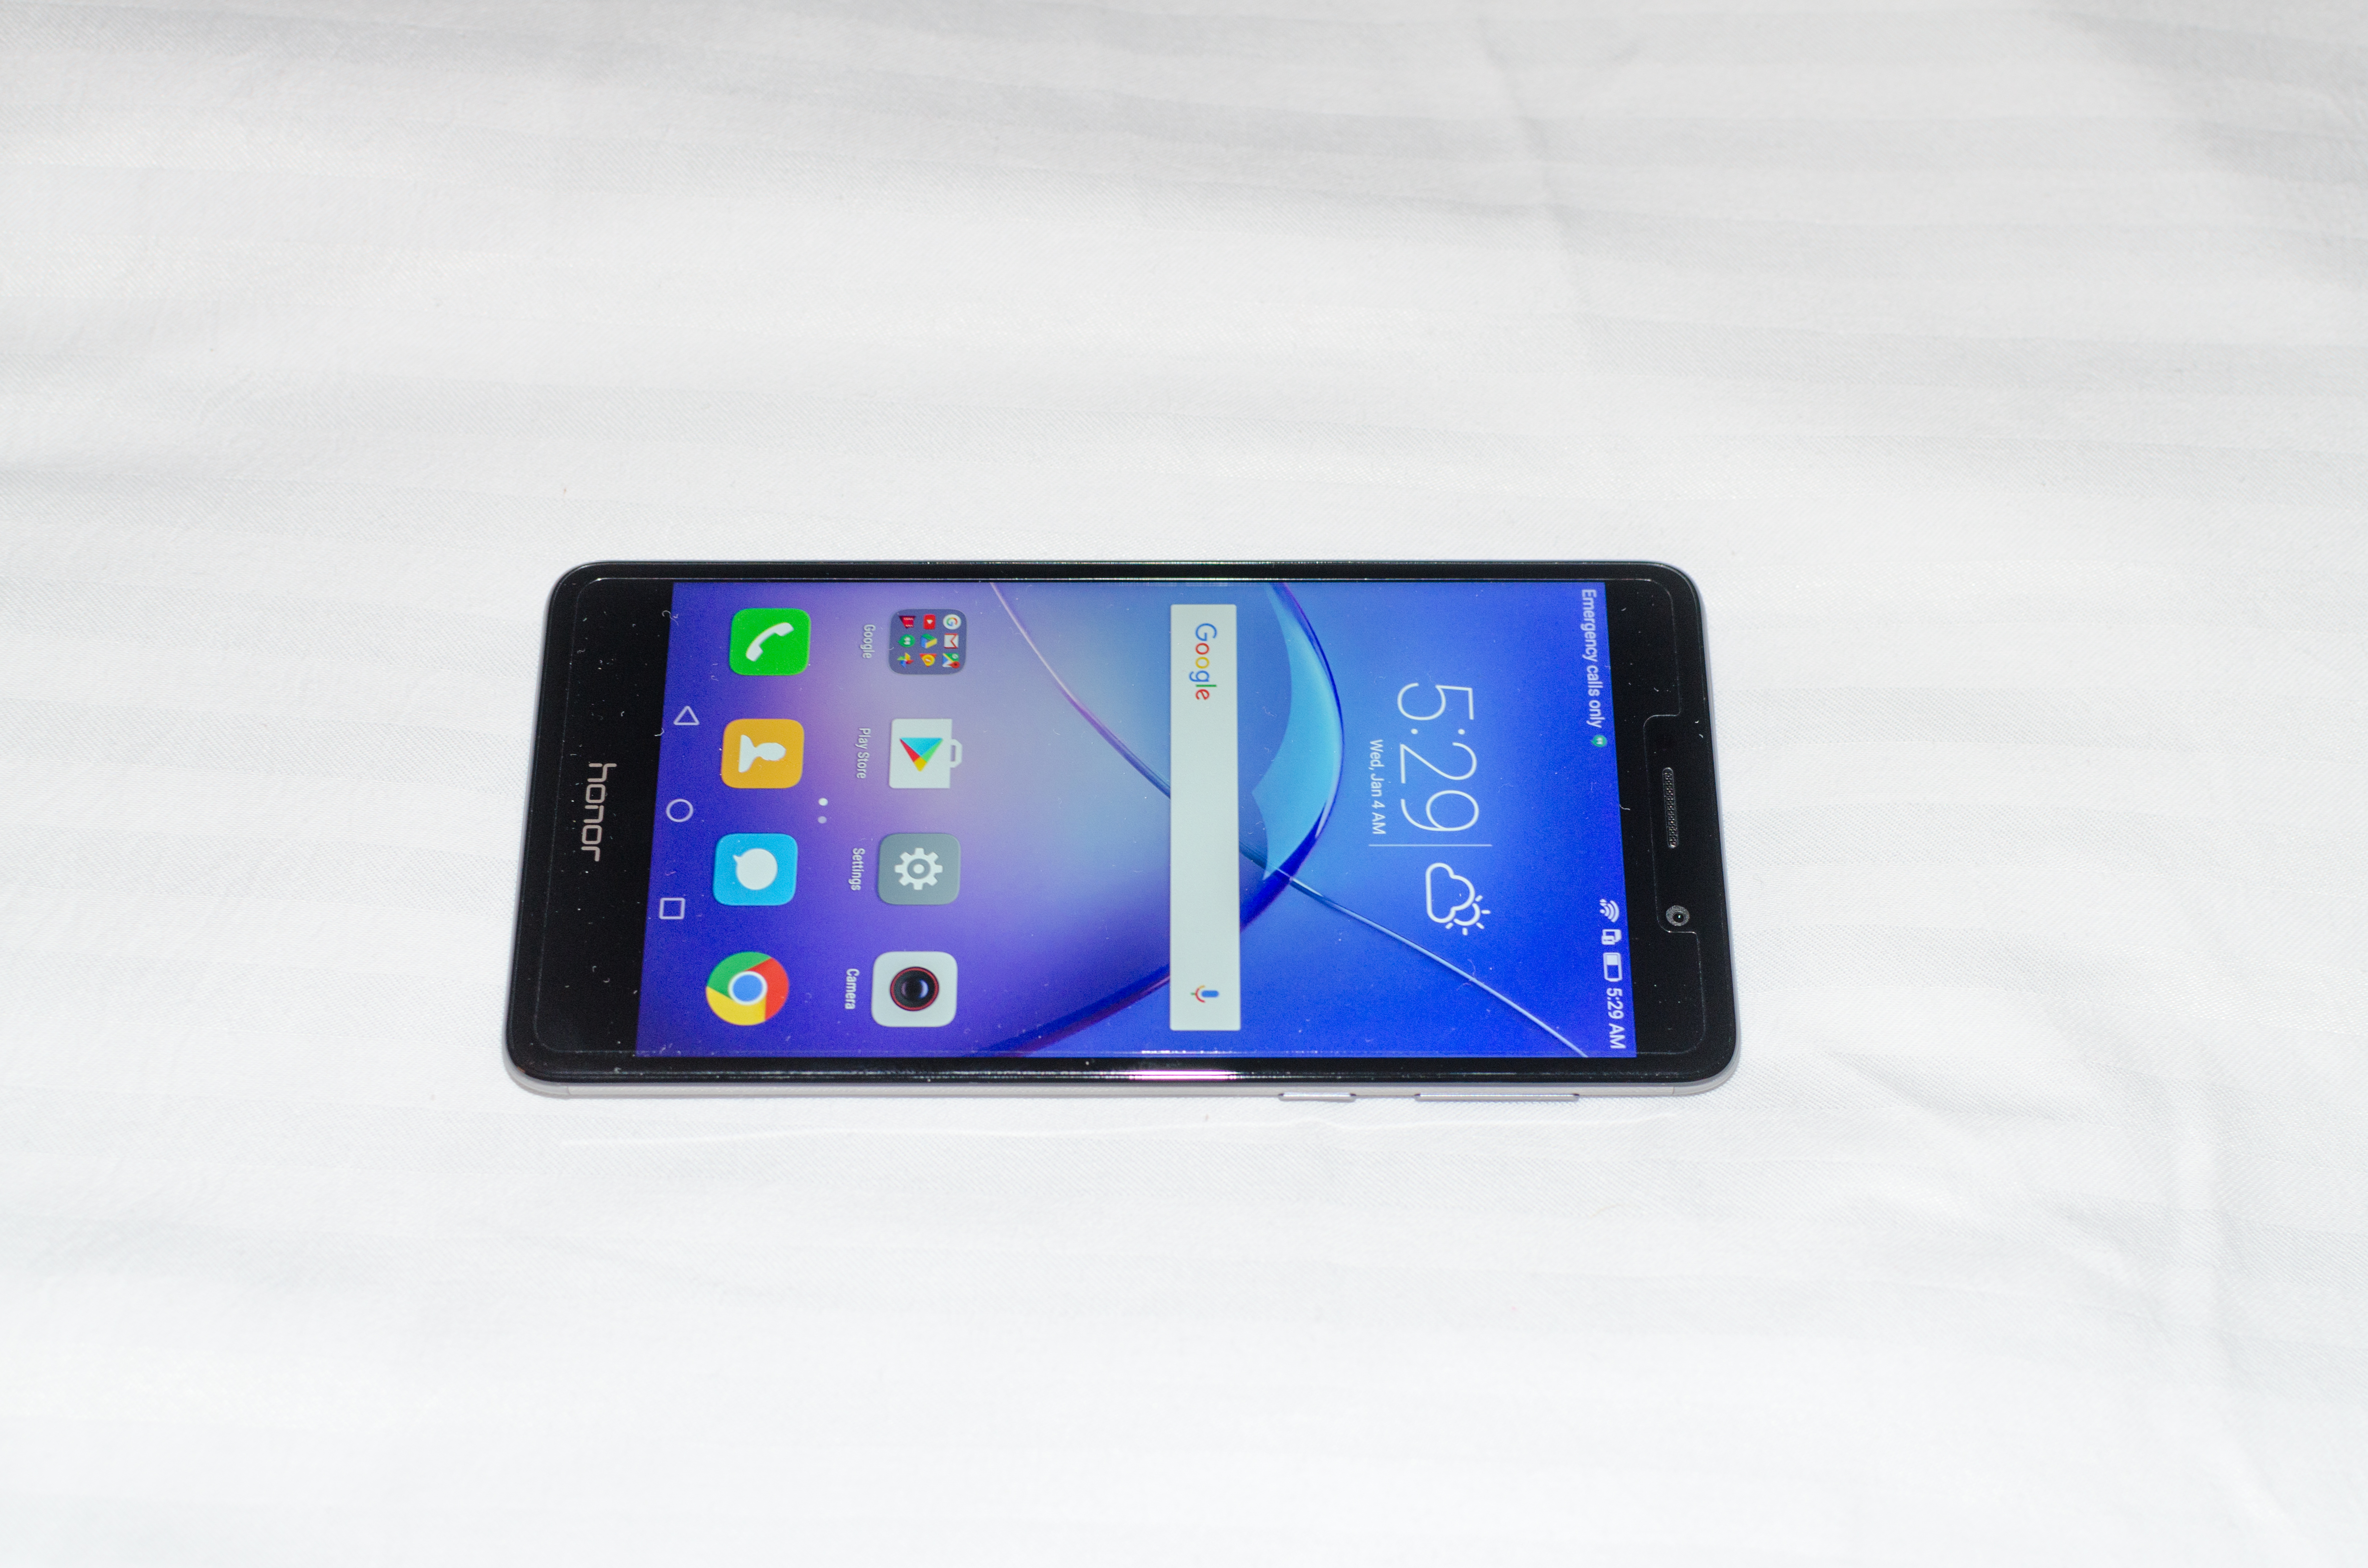 Hands On With the Huawei Honor 6X